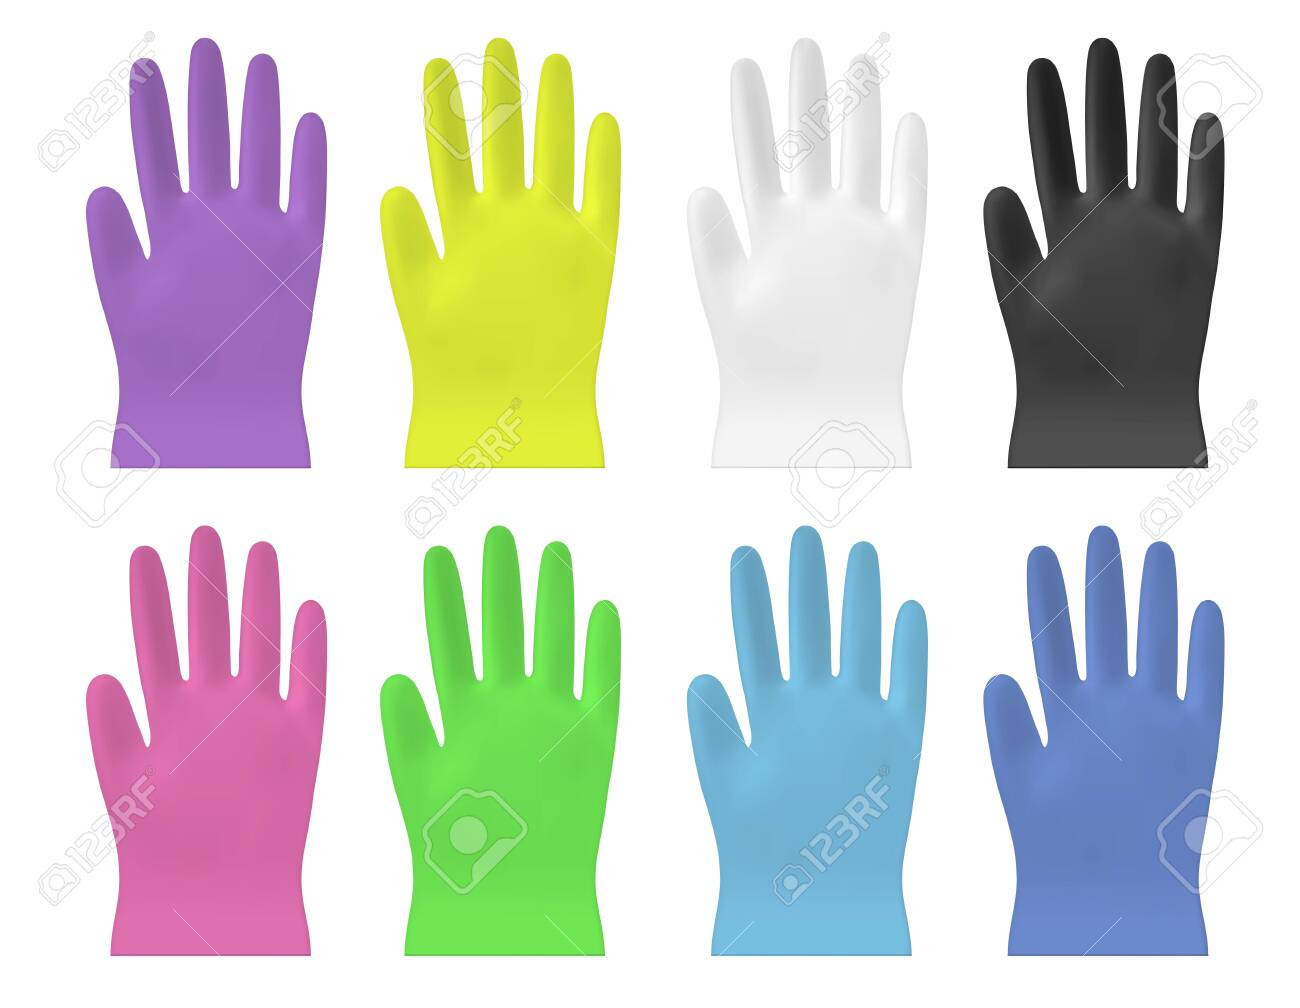 Disposable color vector plastic or nitrile gloves - 145117849